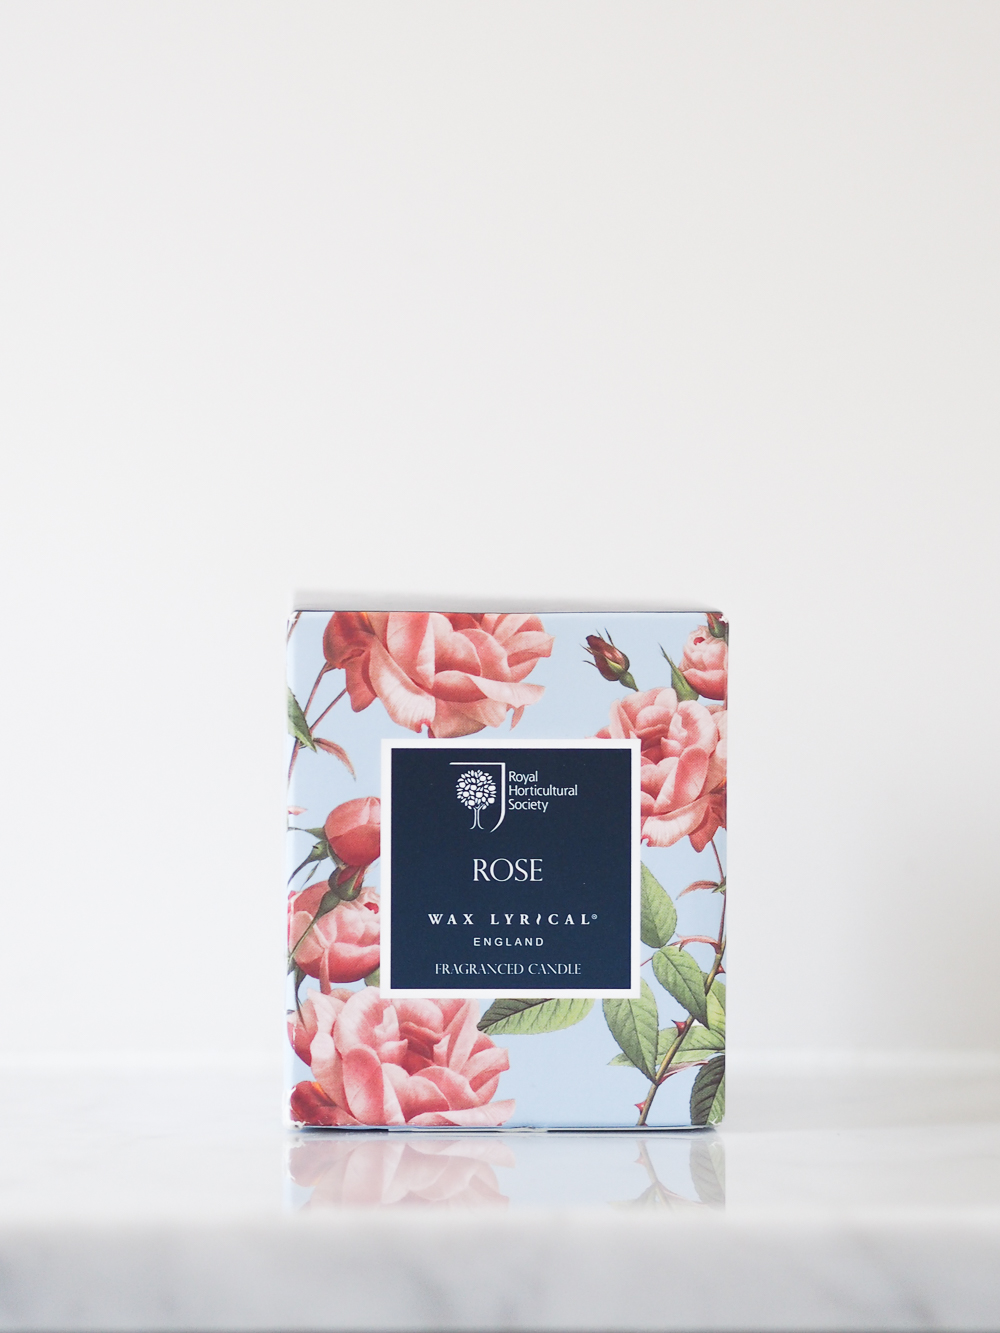 Wax Lyrical RHS Rose scented candle review | Design Hunter